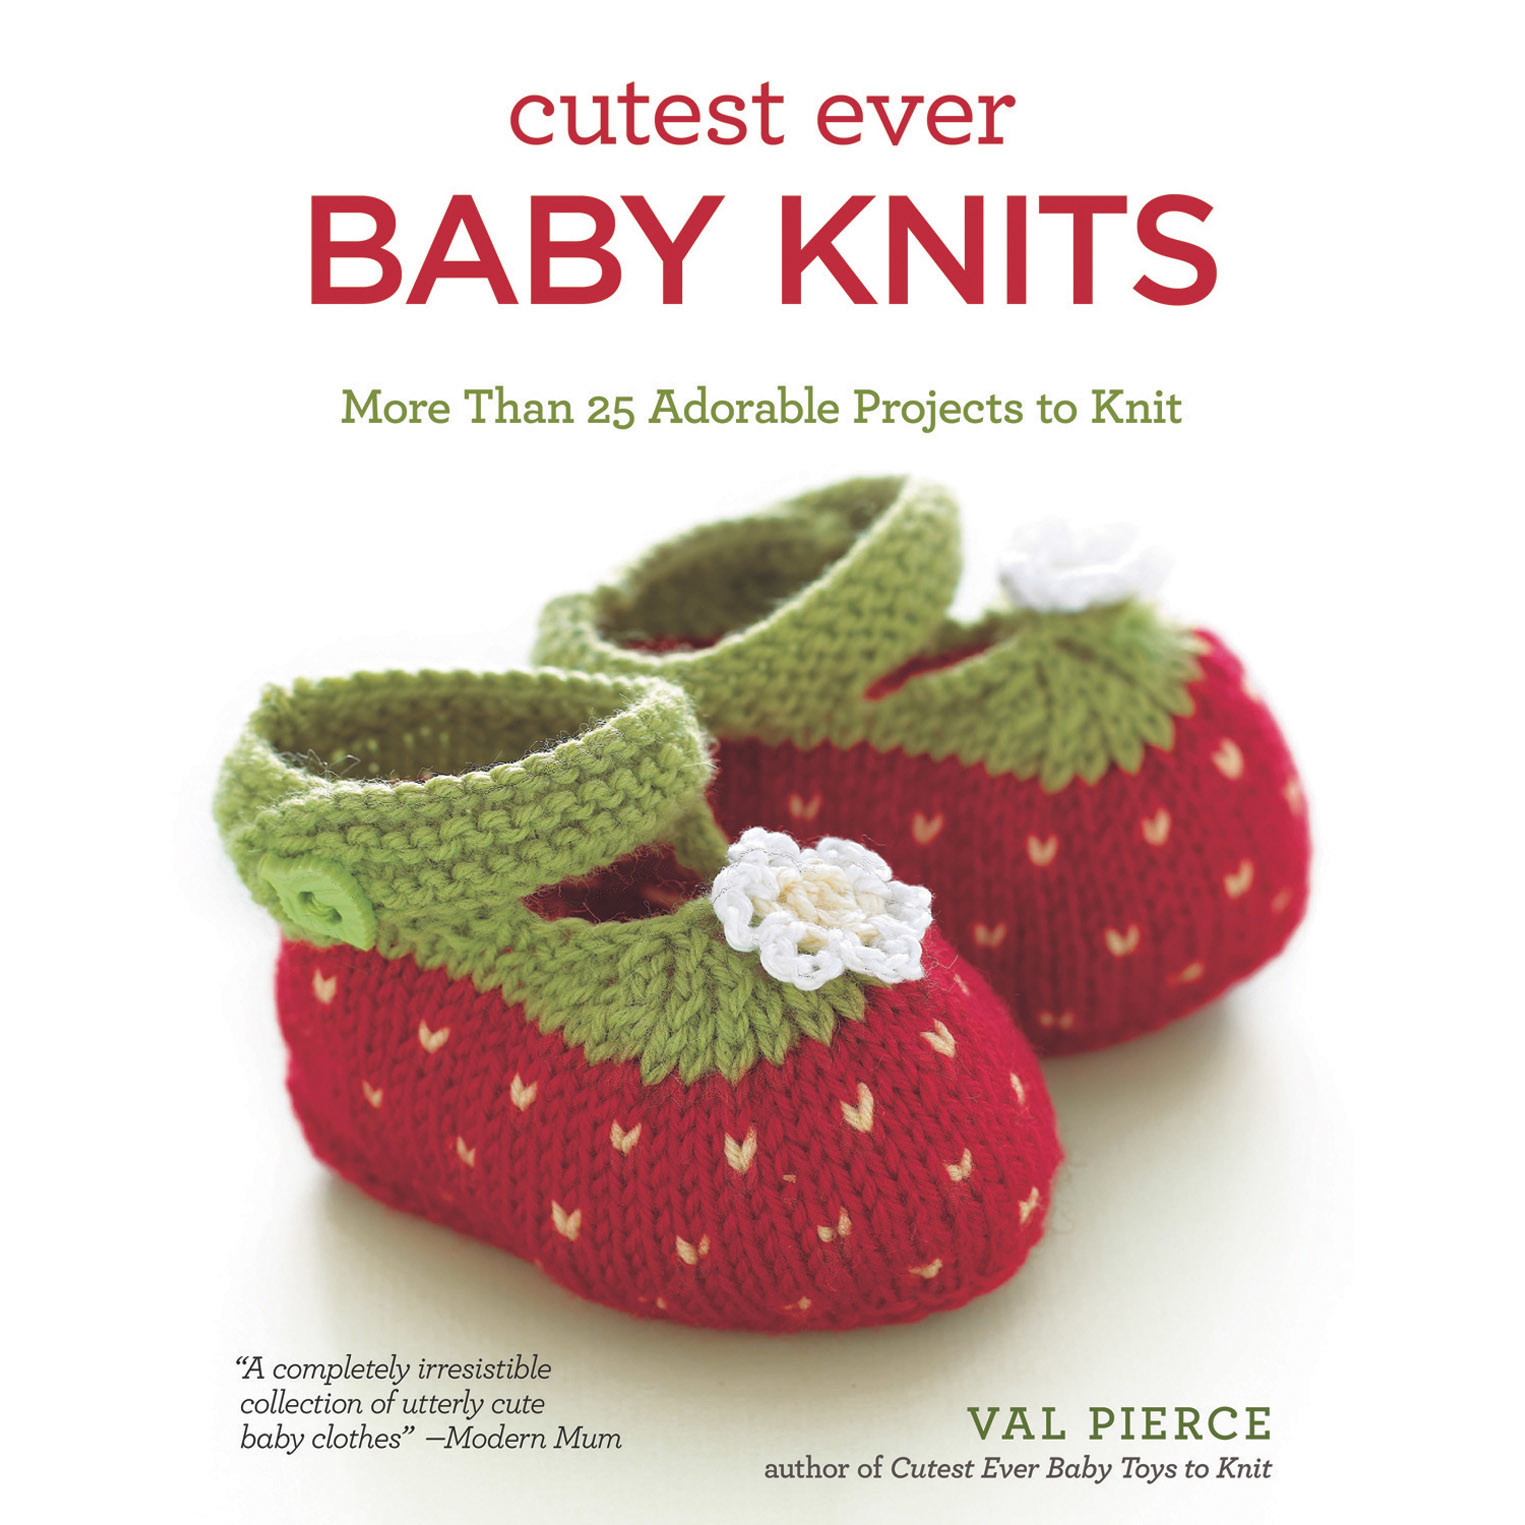 Search Press CUTEST EVER BABY KNITS by VAL PIERCE